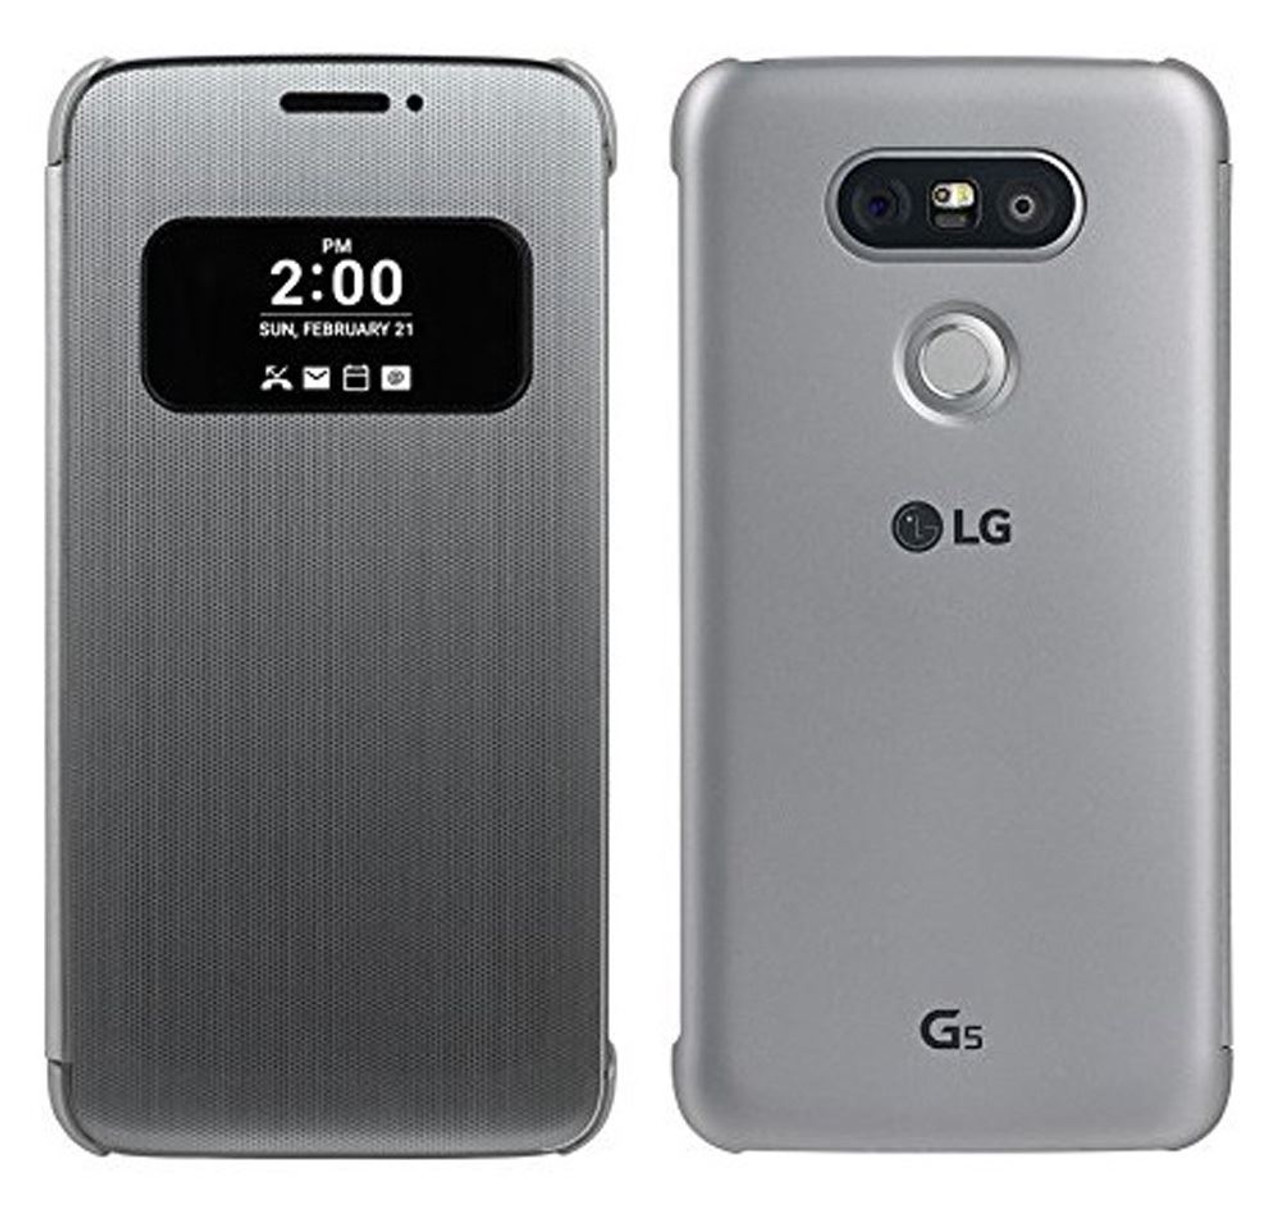 new product 267f6 63034 New Genuine Official LG Folio View Cover Flip Case for LG G5 - Silver